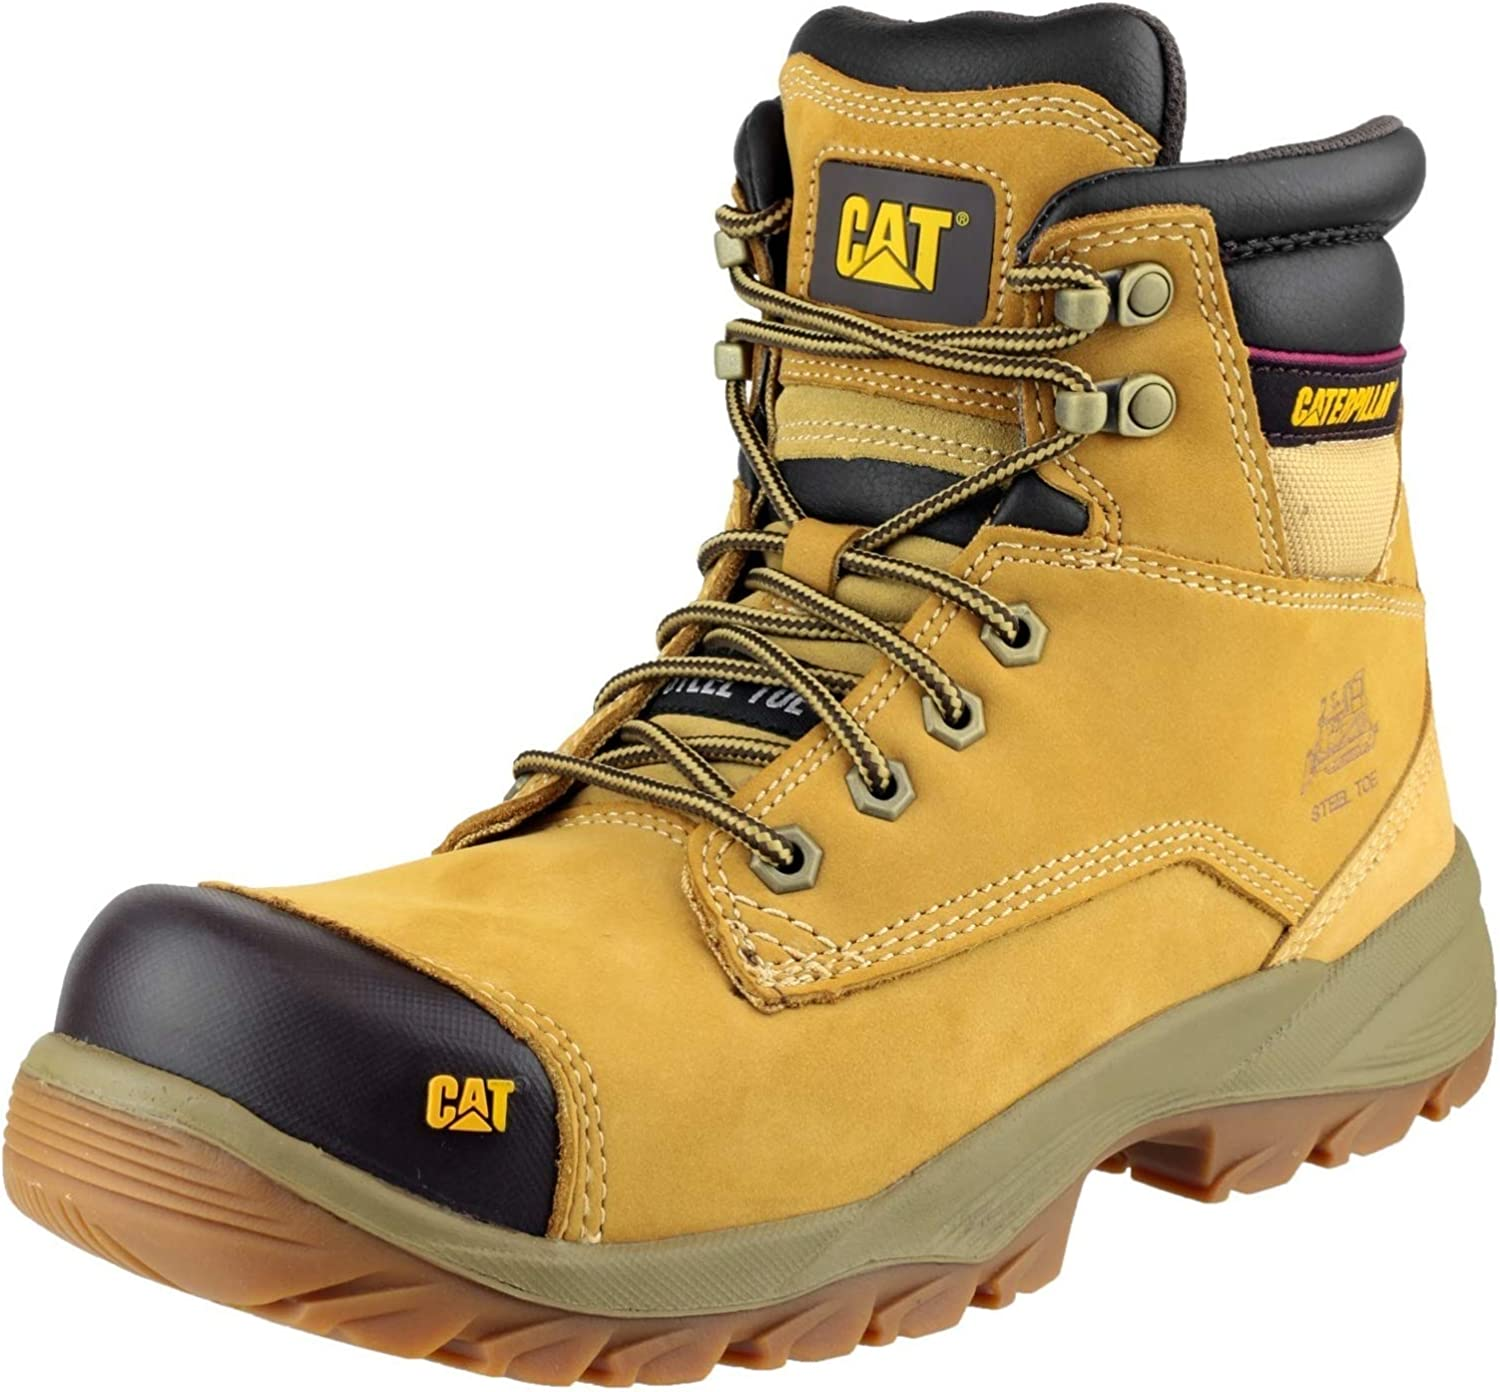 Safety Toe Leather Work Boots Honey